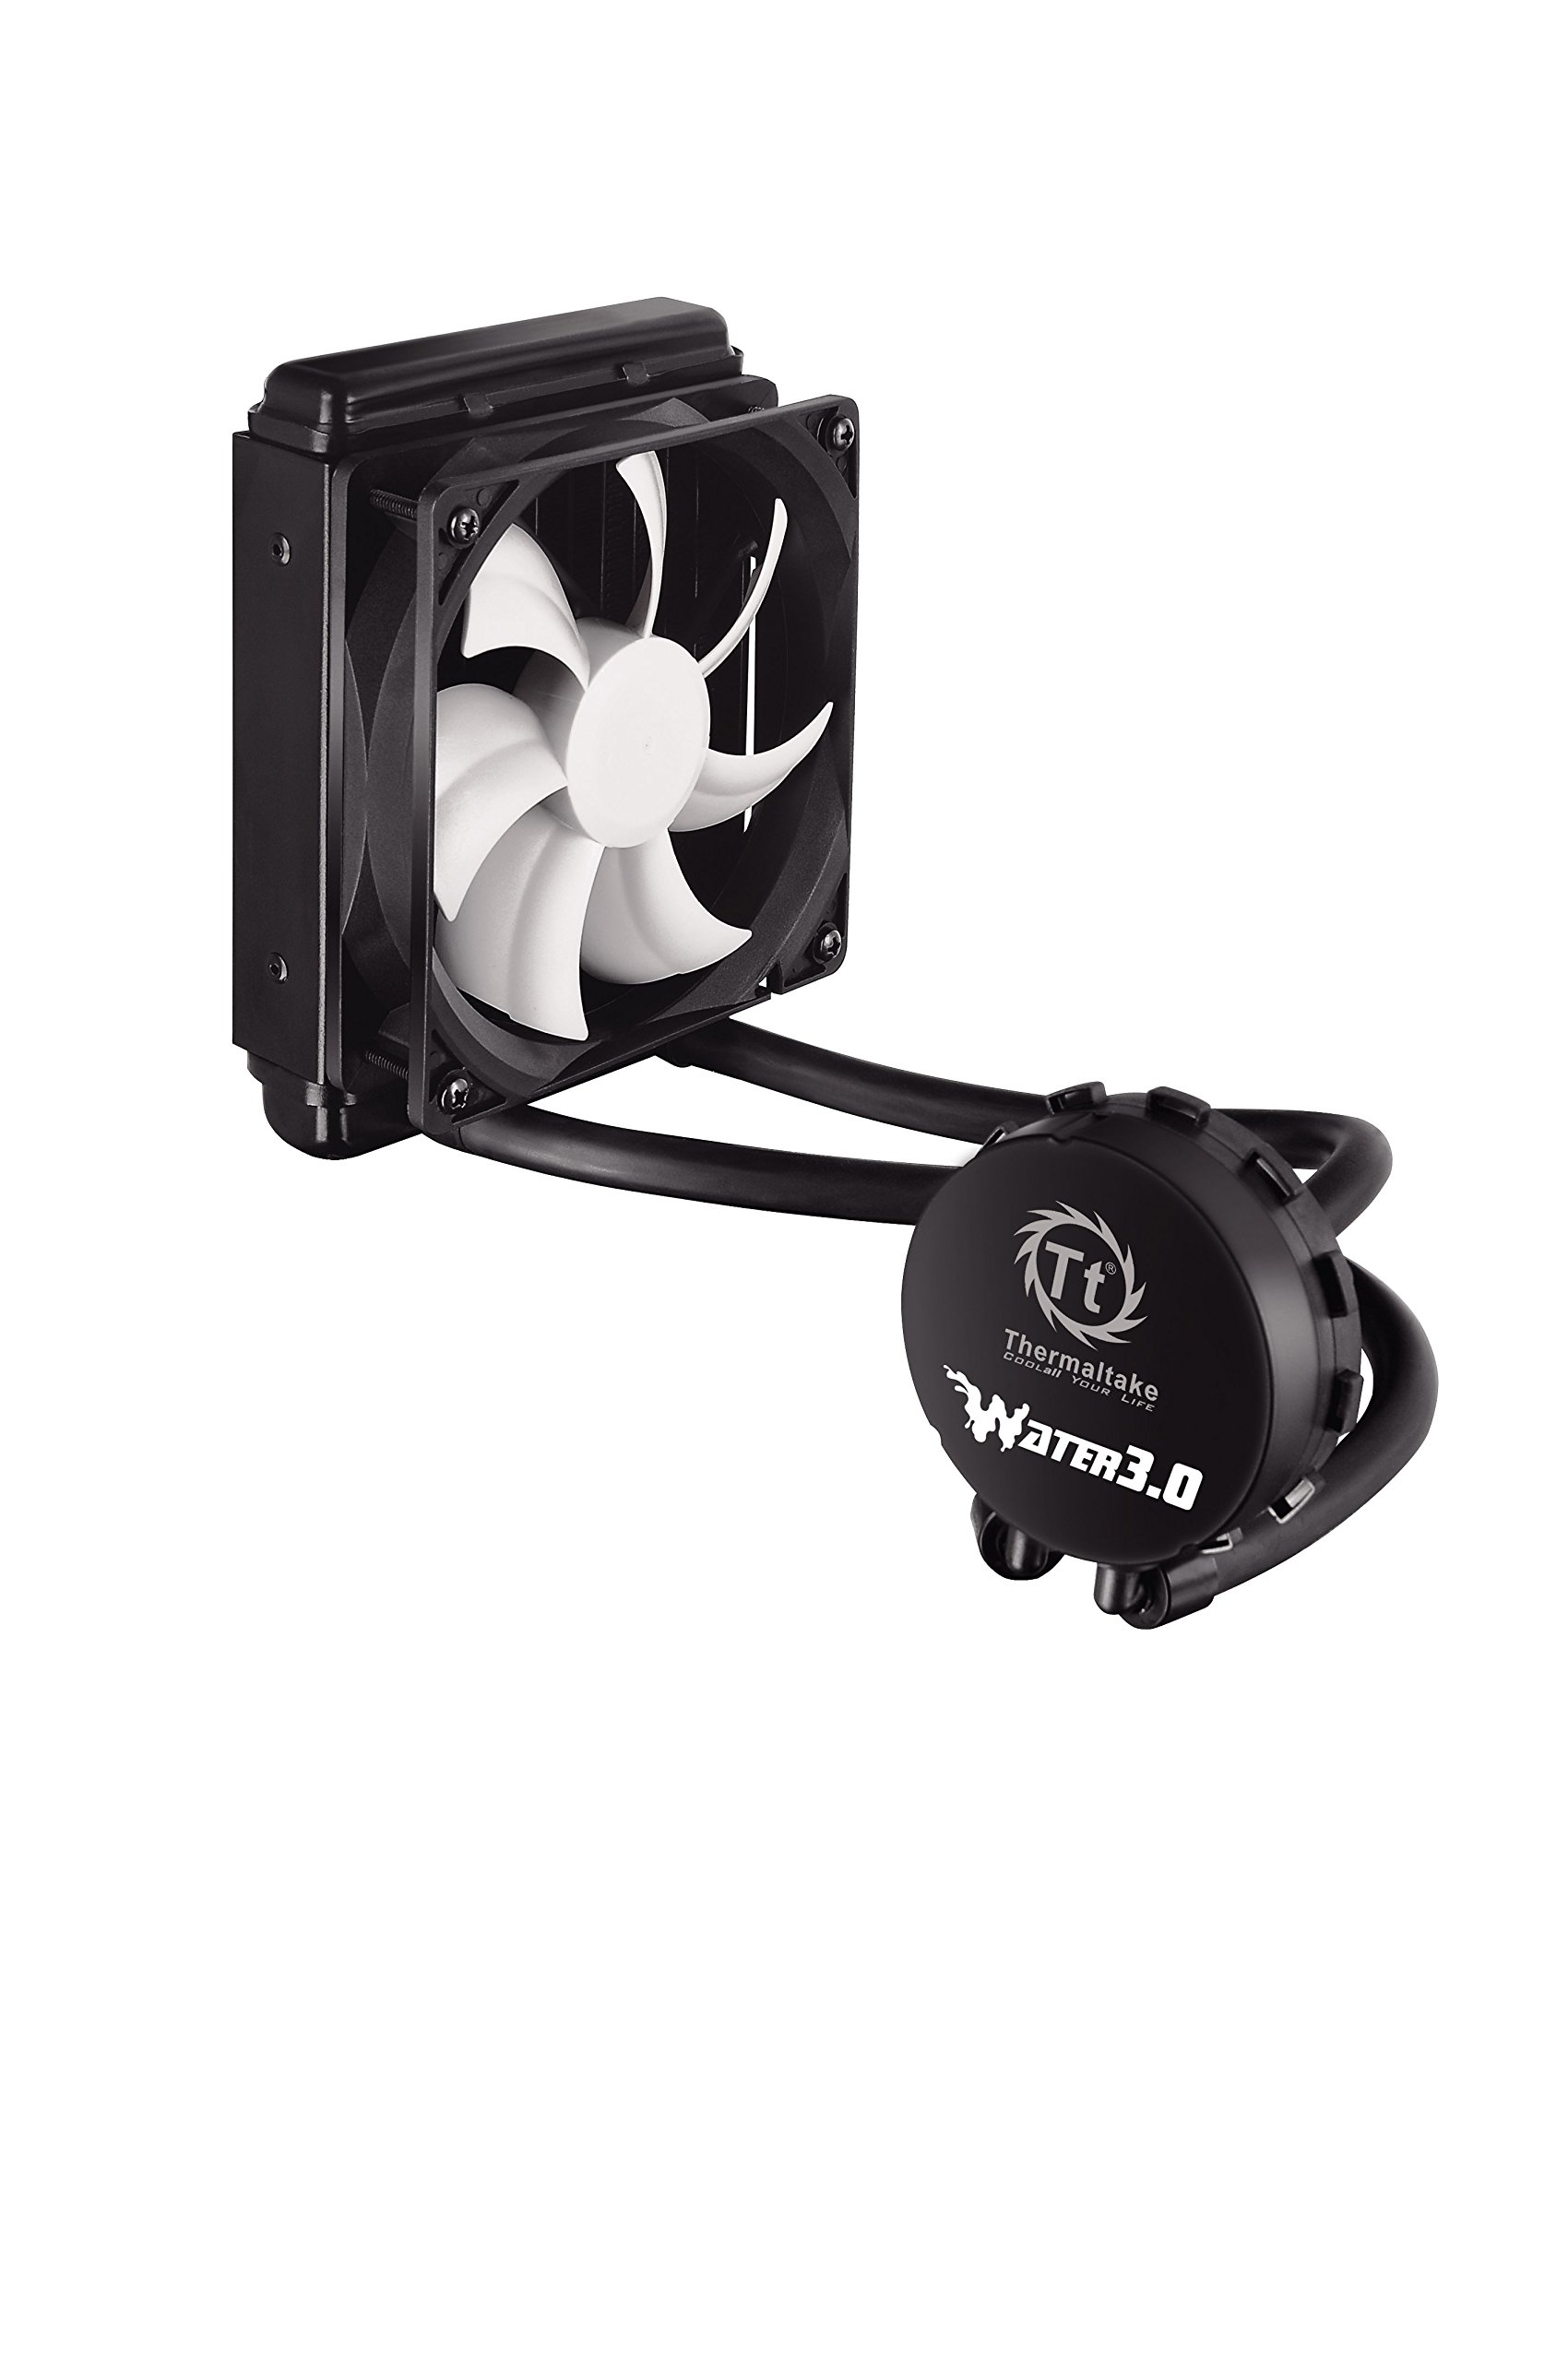 Thermaltake Water 3.0 Performer C 120mm AIO Liquid Cooling System CPU Cooler CLW0222-B